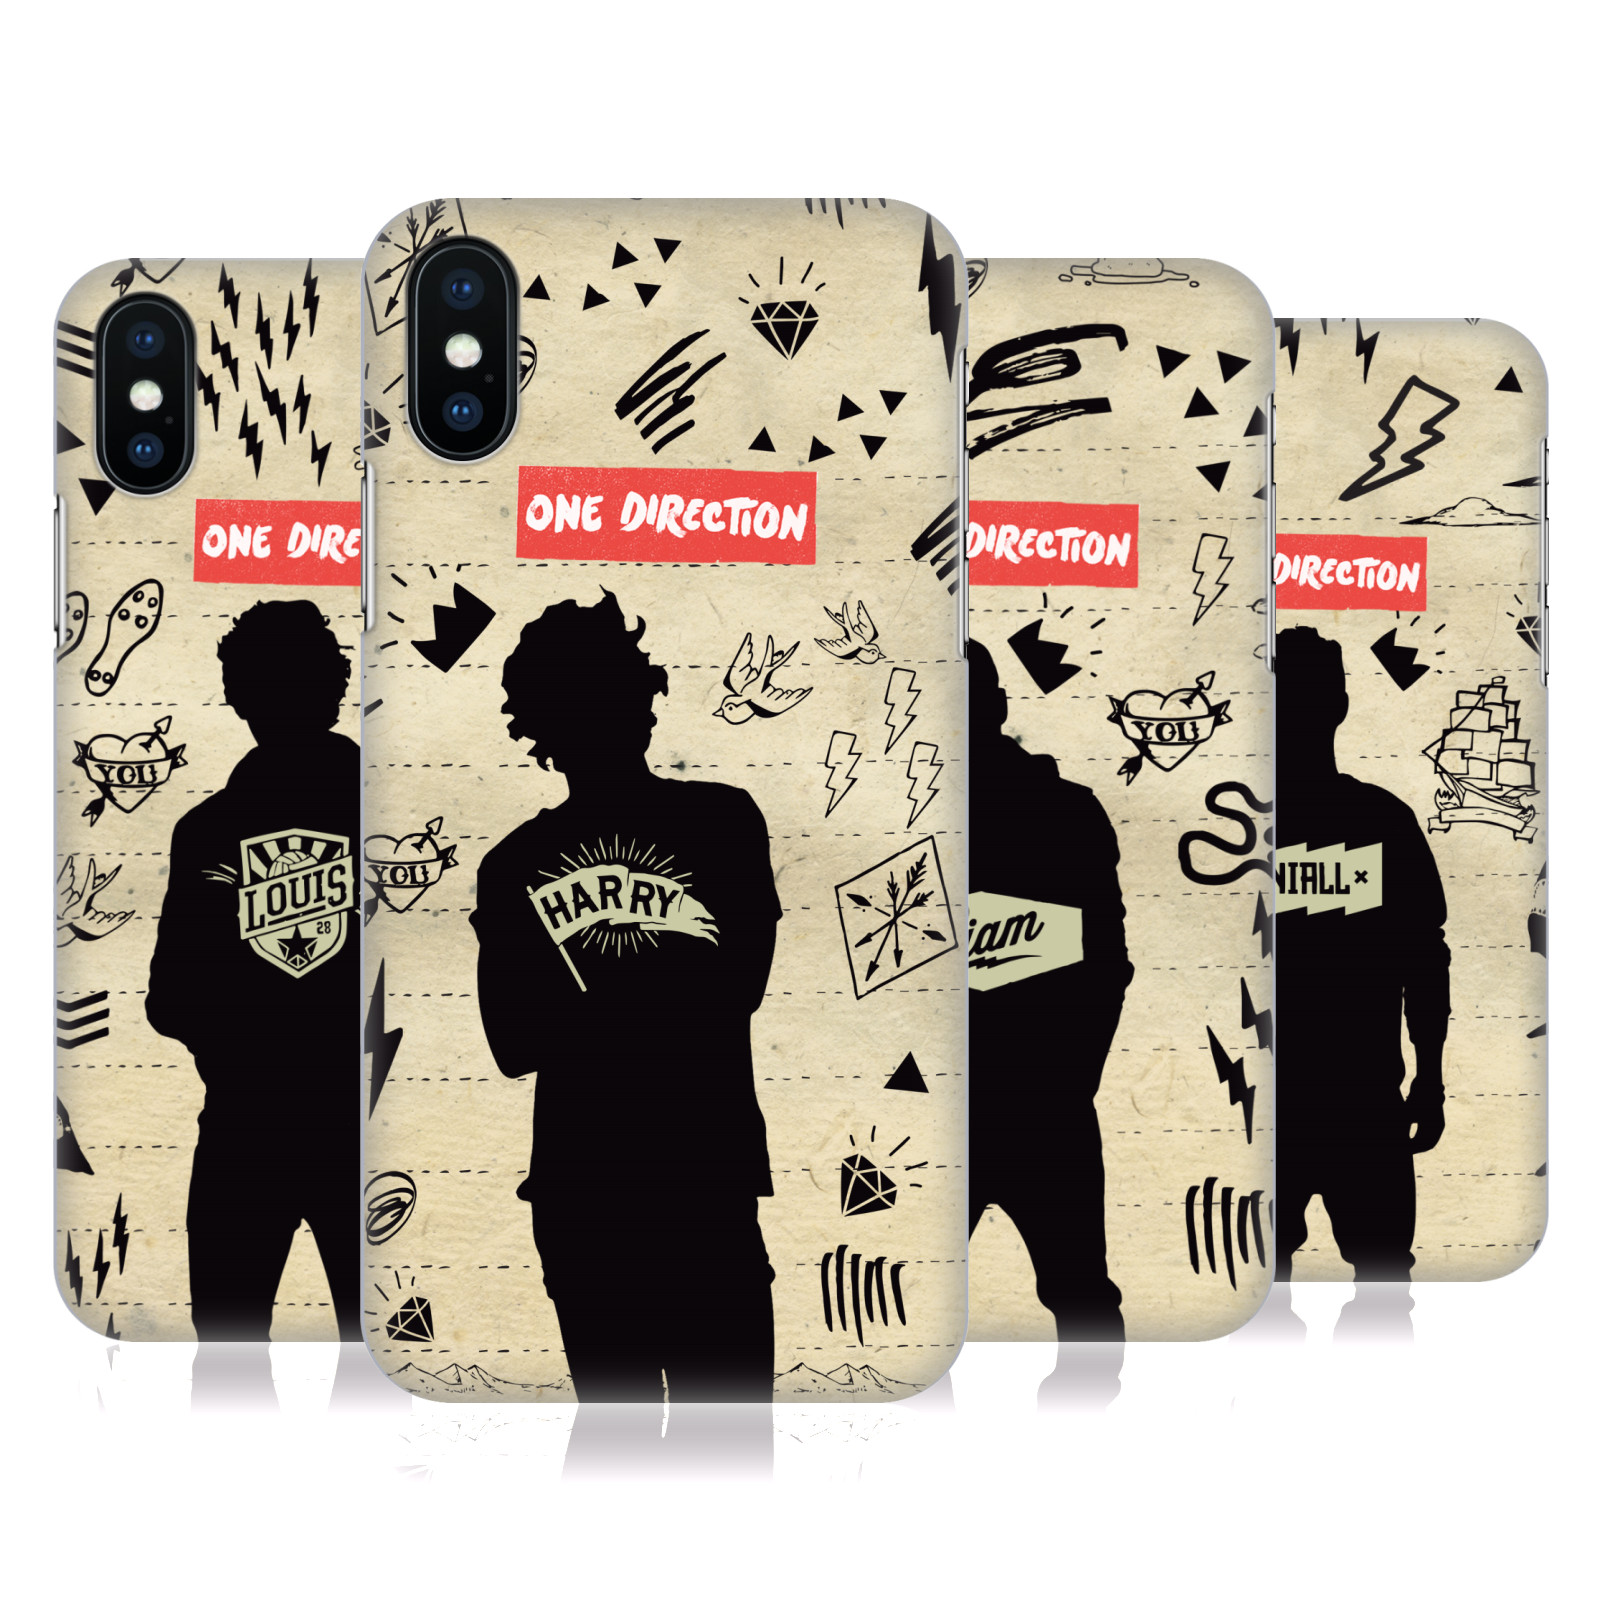 One Direction Silhouettes